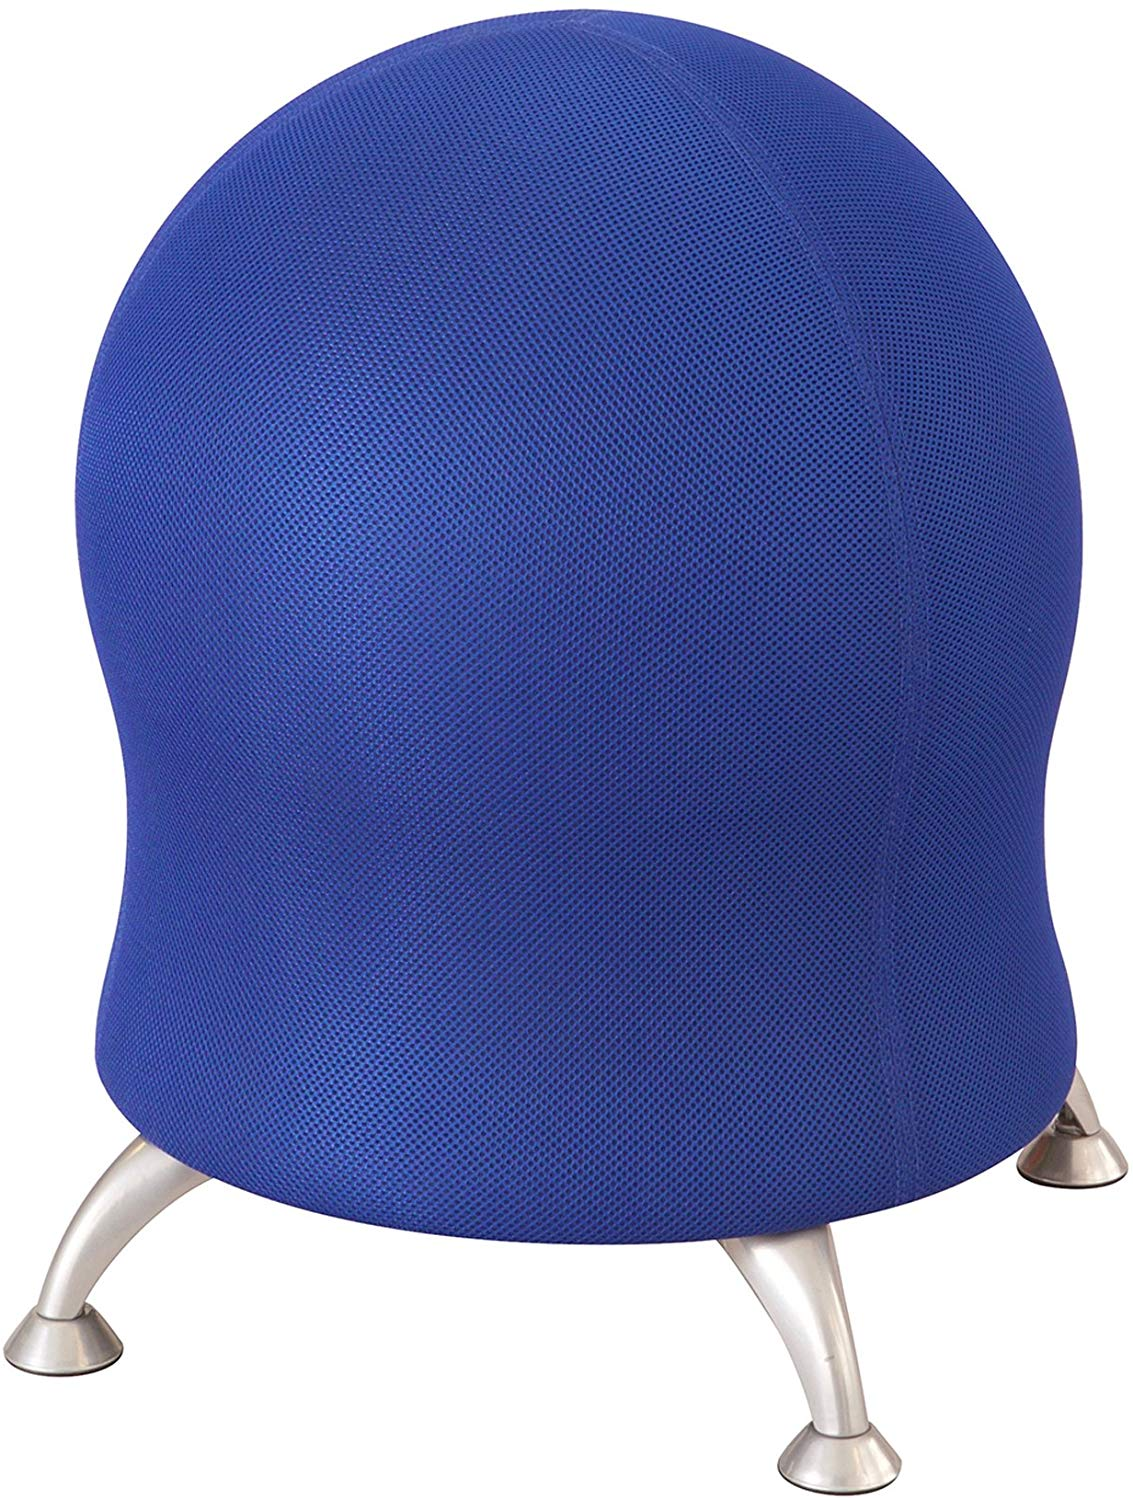 Safco 4750BU Ball Chair